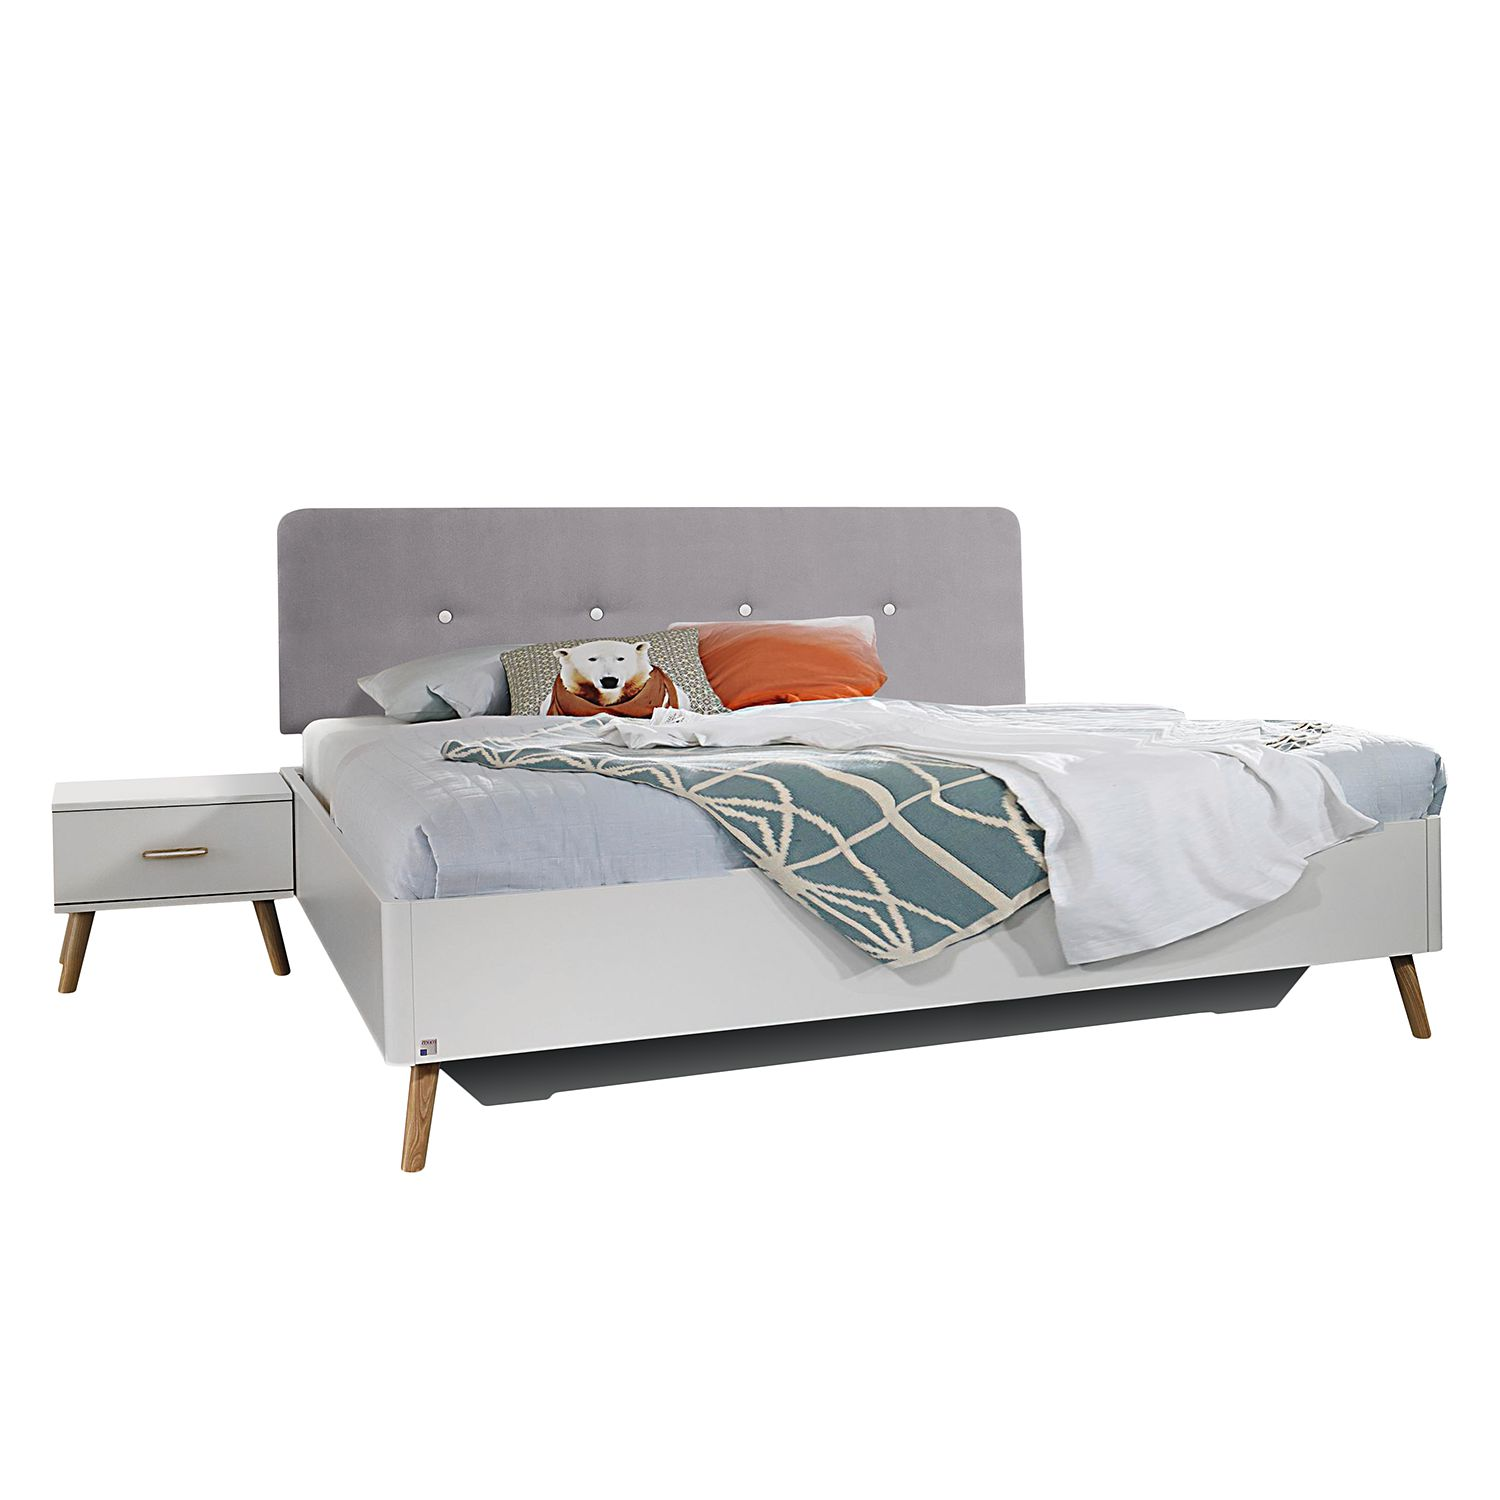 goedkoop Bed Annett wit 180 x 200cm Rauch Packs